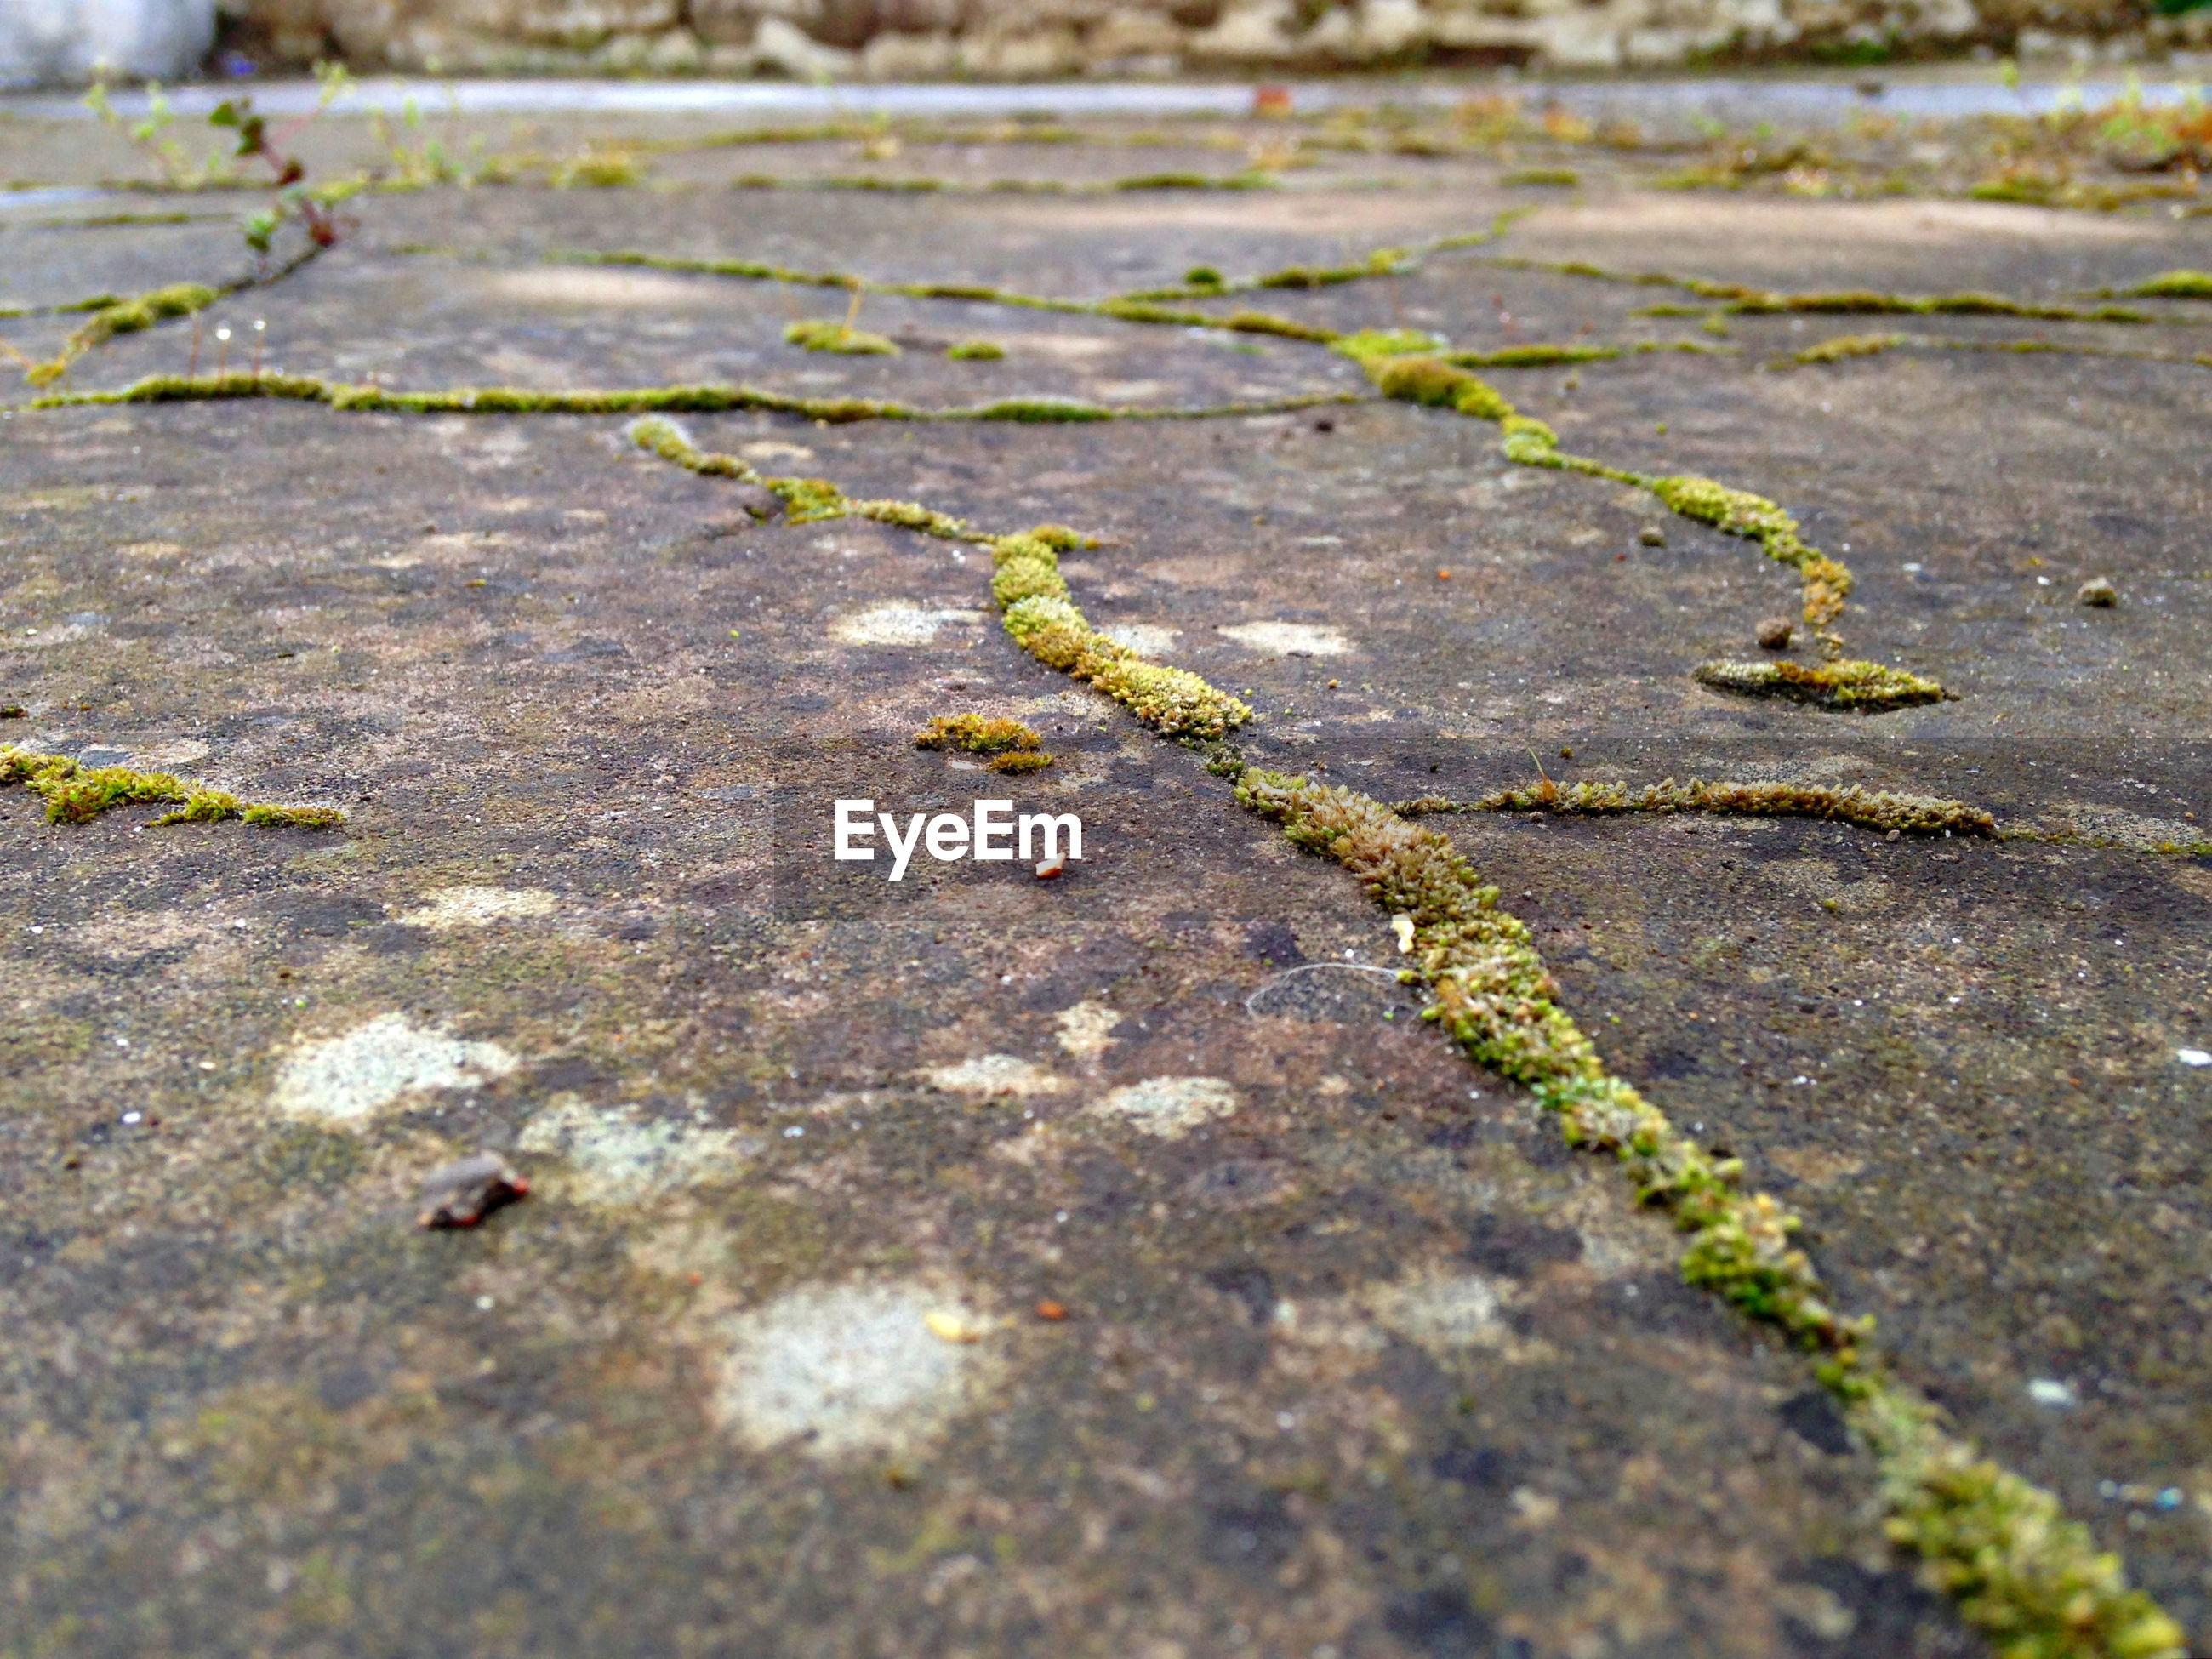 Surface level shot of moss growing on street